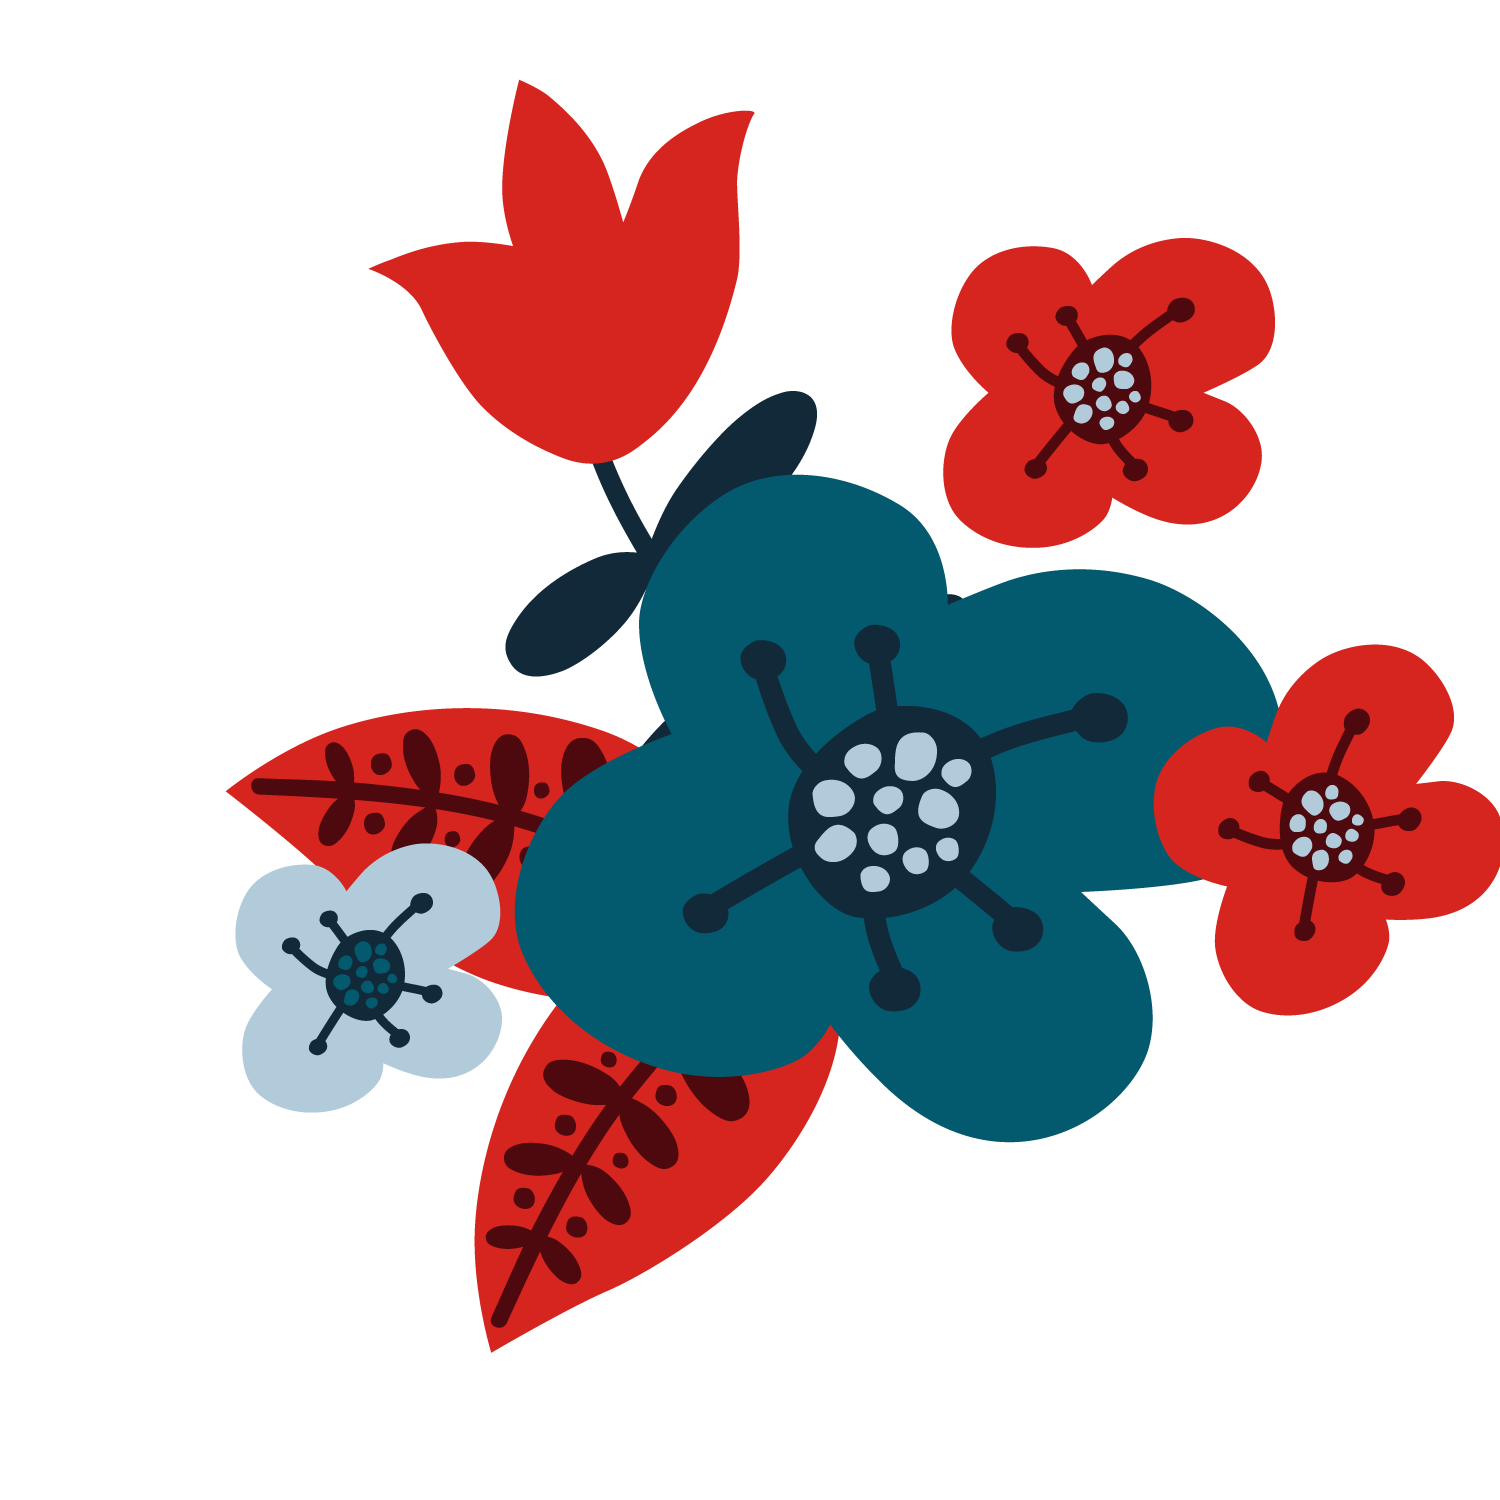 Free flower vector clipart graphic Flower Christmas - Red flower vector 1500*1500 transprent Png Free ... graphic